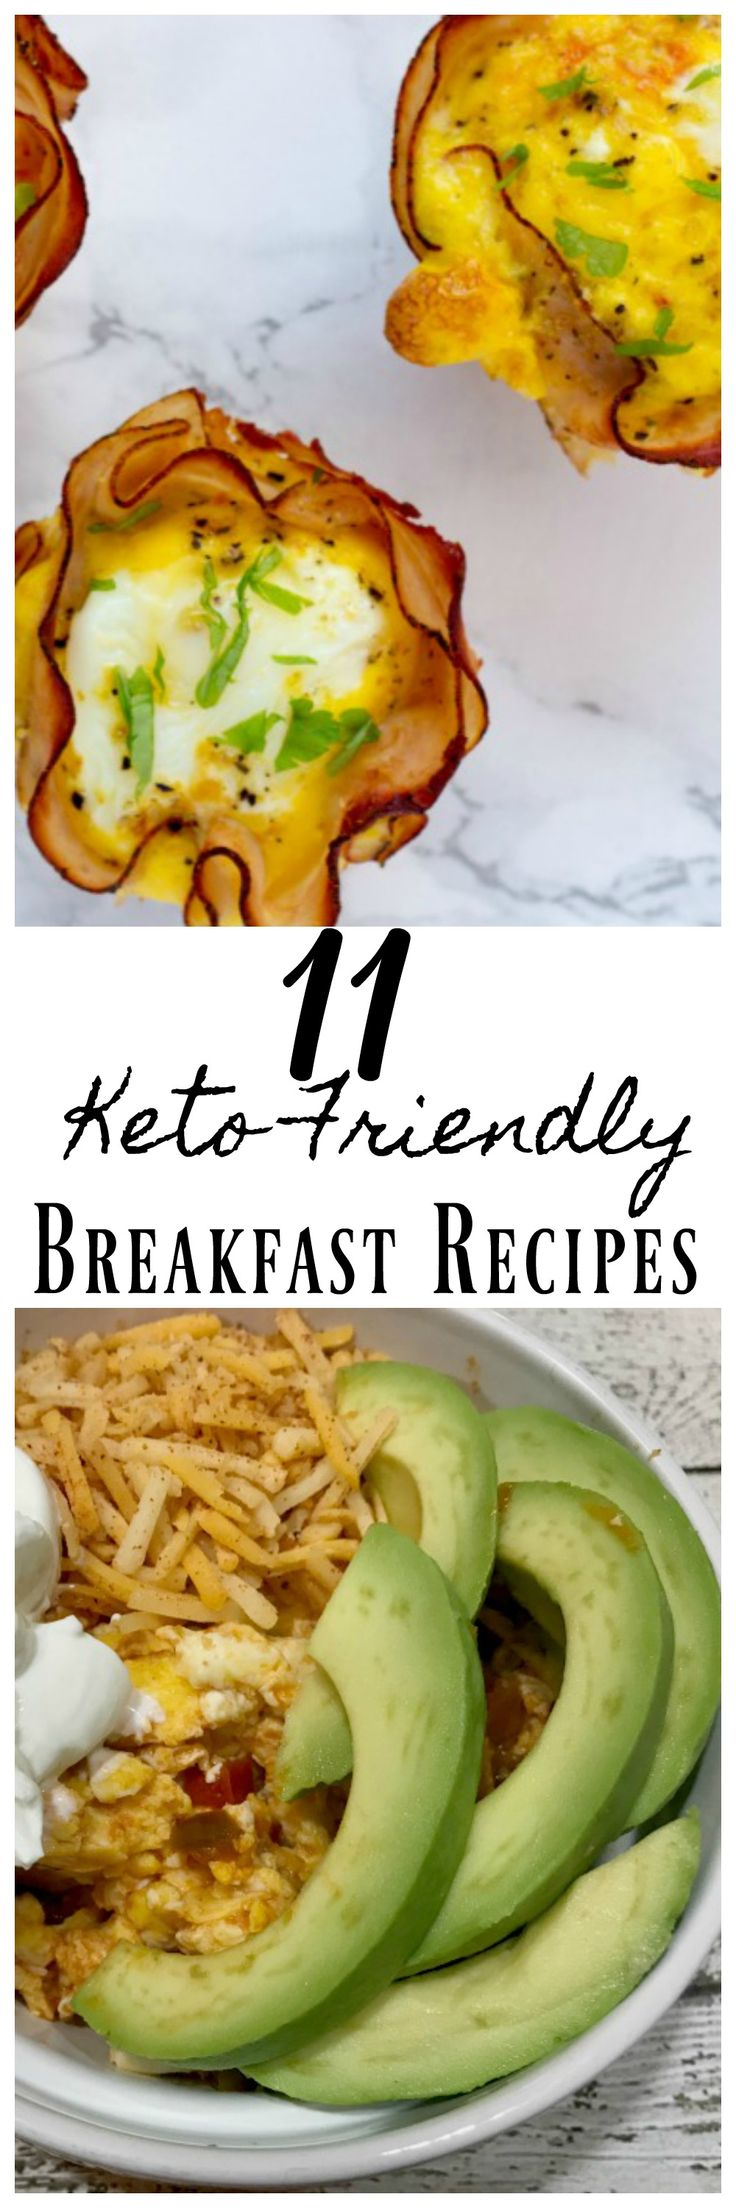 Never get bored while Keto with these amazing Keto Breakfast Recipes. All Keto recipes that are super easy to make and they are super tasty too!